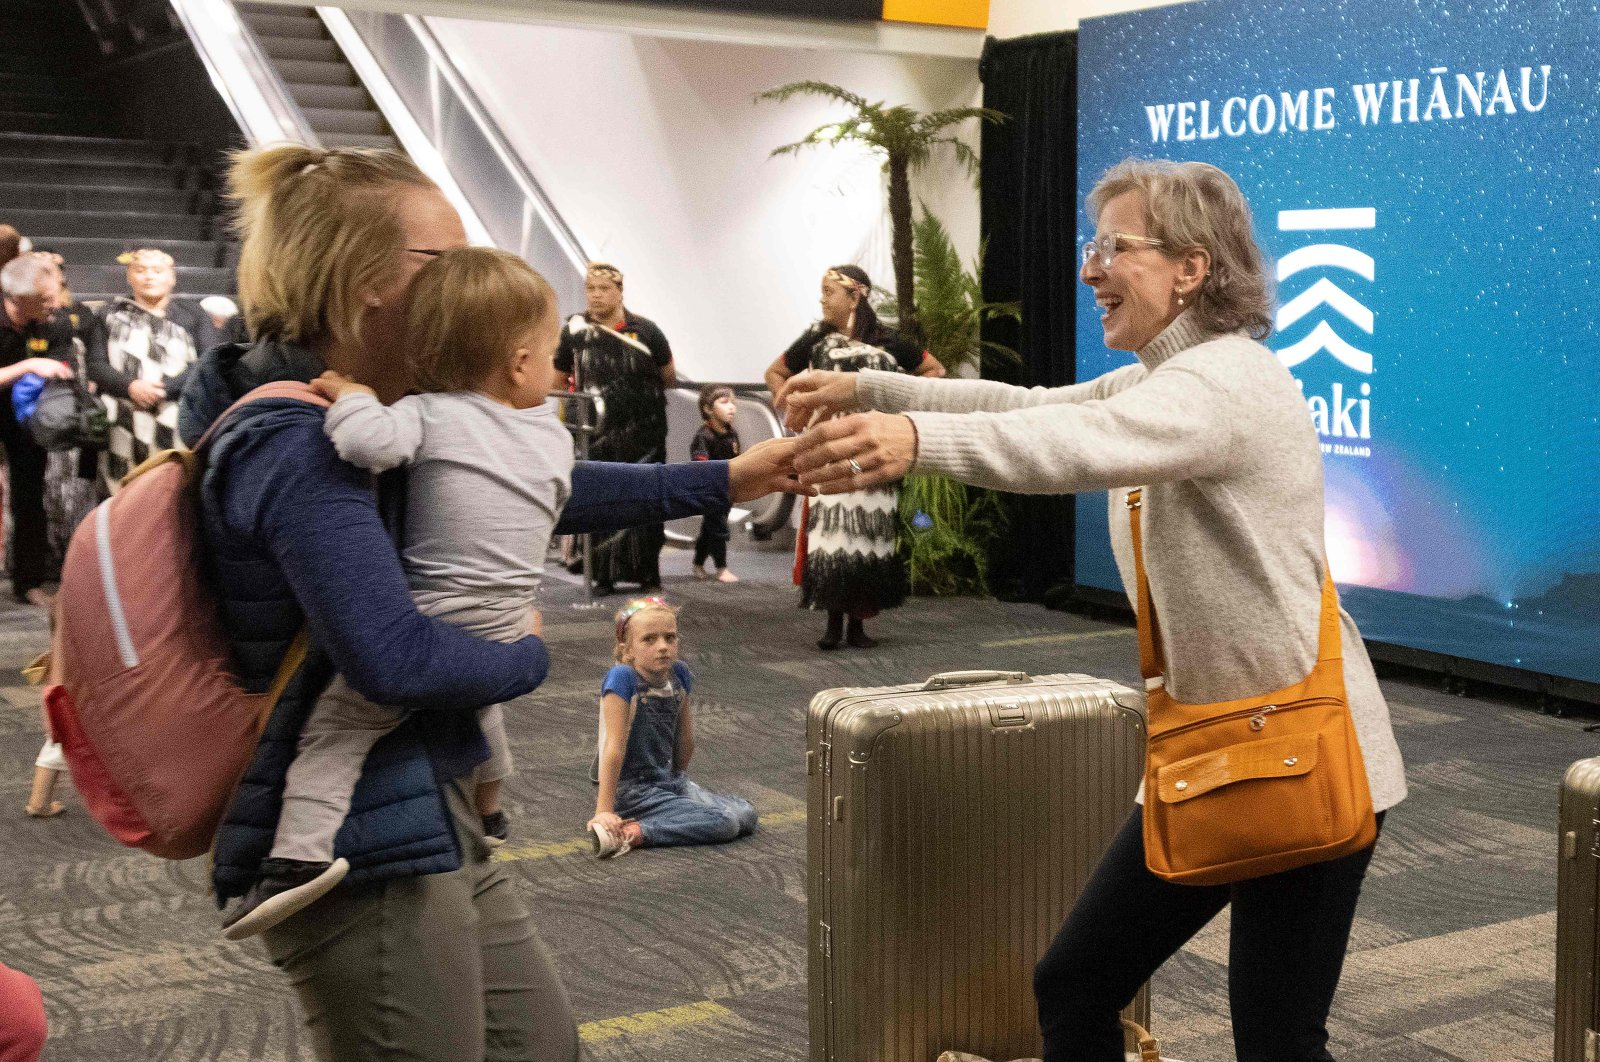 """Families are reunited as travelers arrive on the first flight from Sydney, as Australia and New Zealand opened a trans-Tasman quarantine-free """"travel bubble,"""" Wellington, New Zealand, April 19, 2021. (AFP Photo)"""